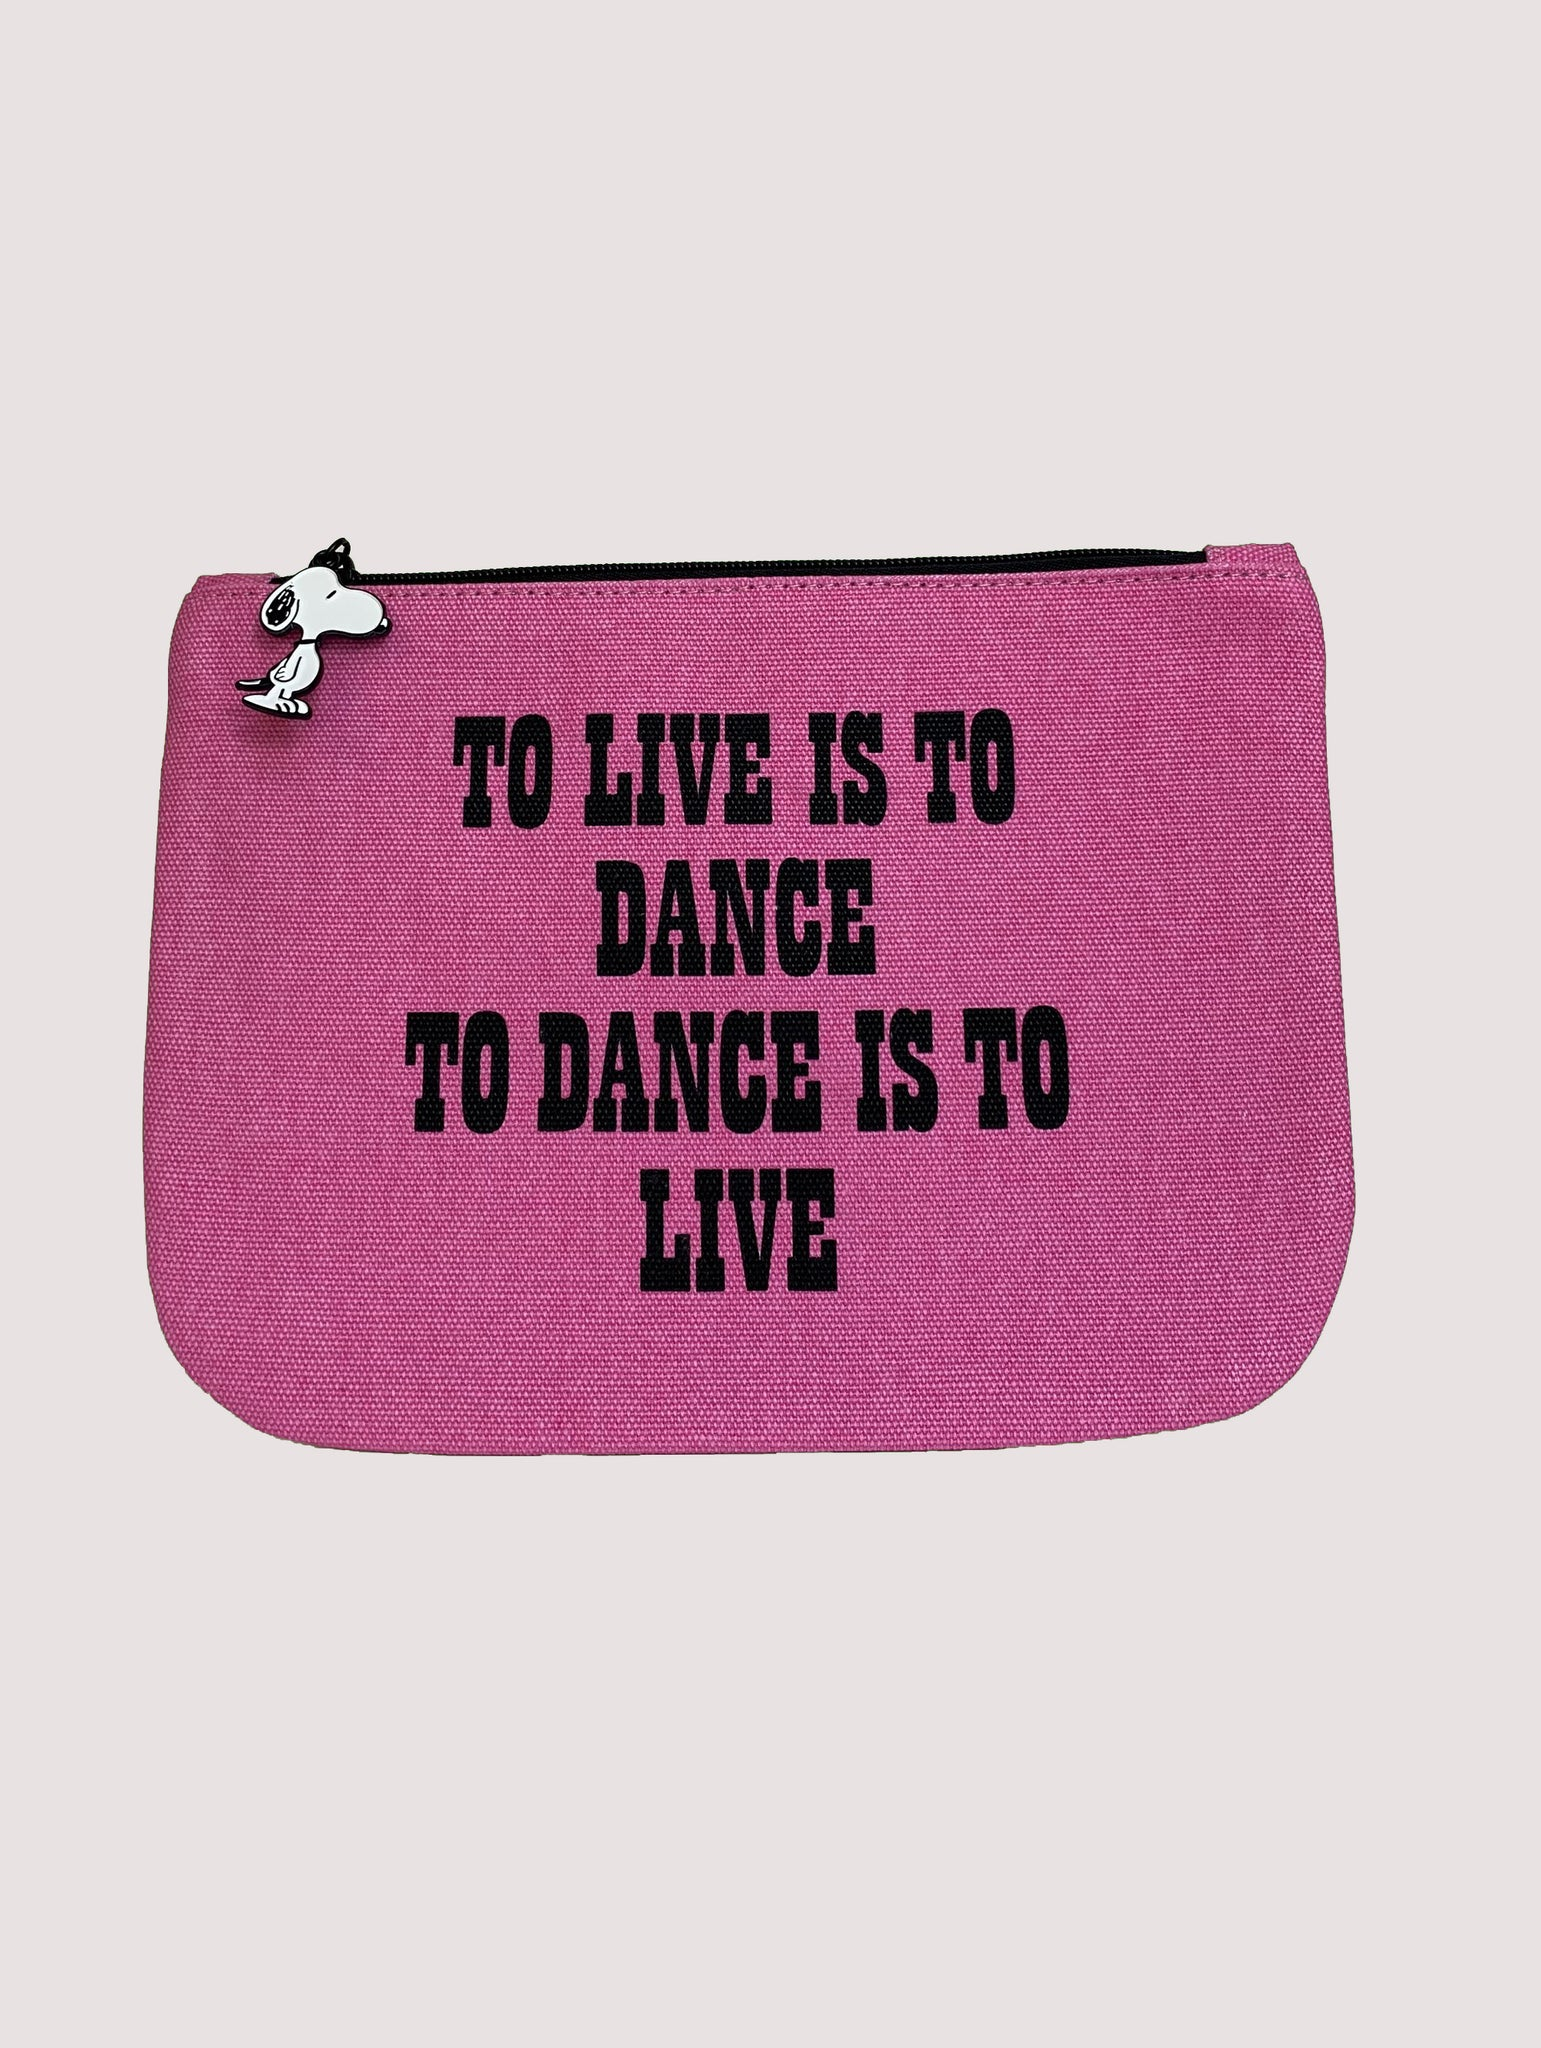 SNOOPY POUCH -  DANCE